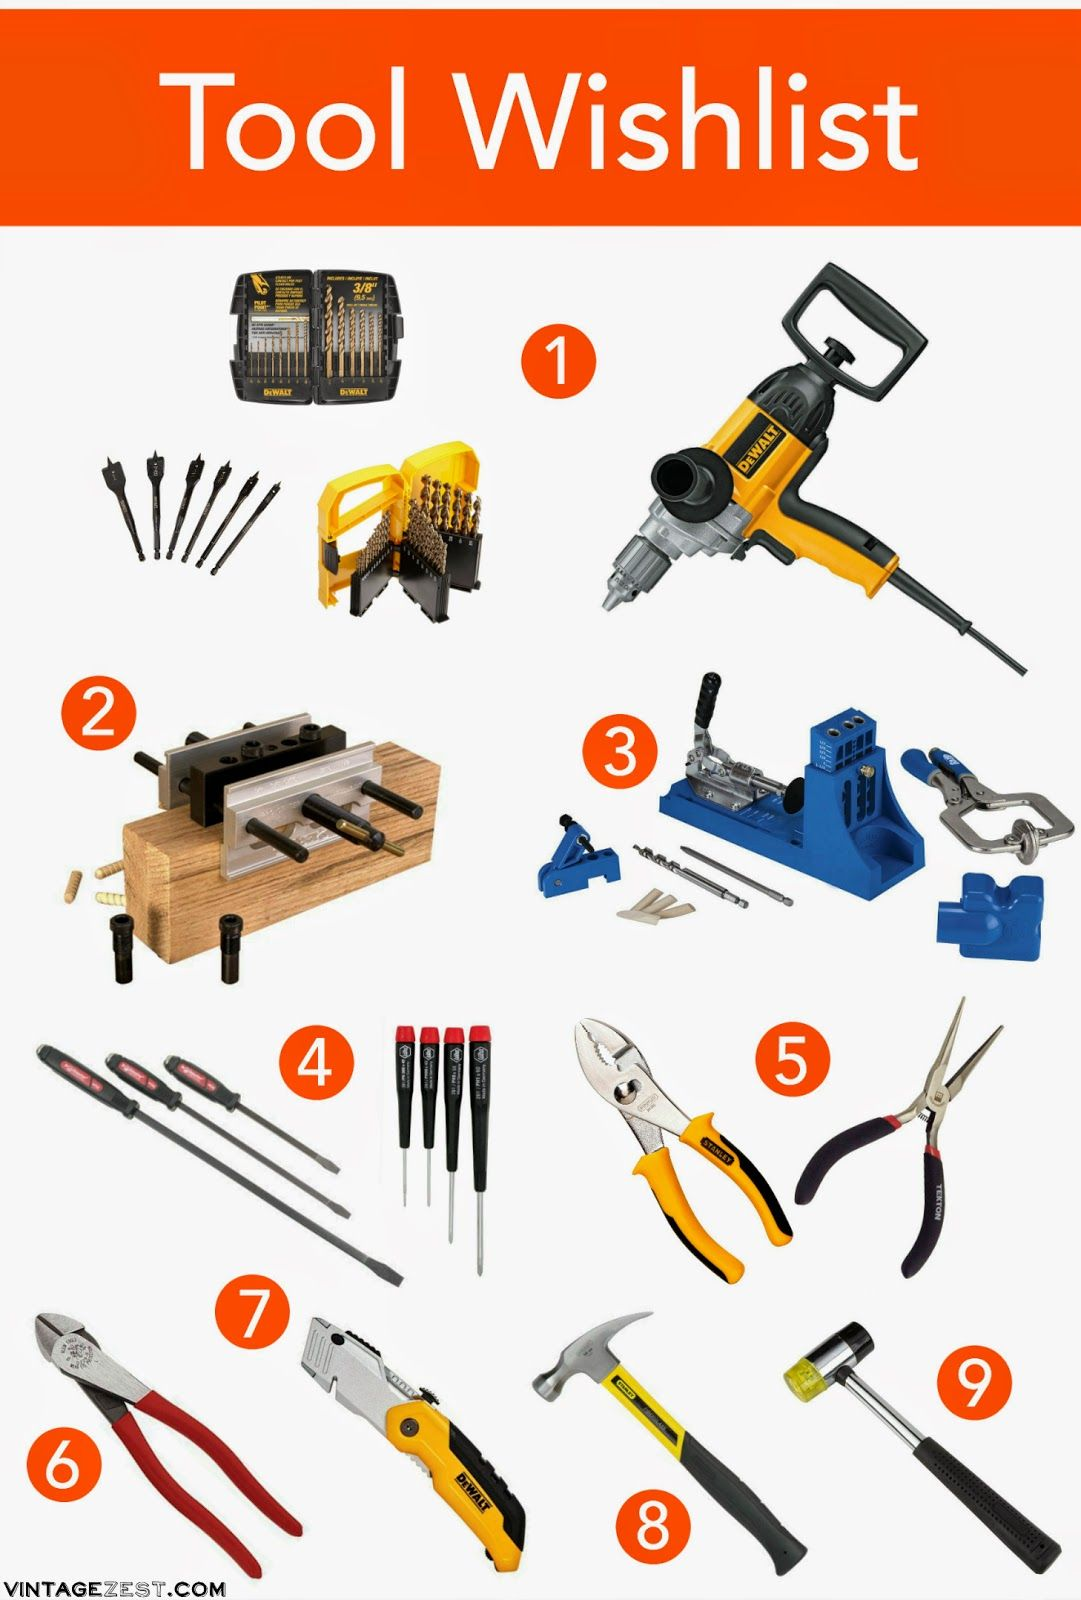 Essential Woodworking Tools For Beginners Tools For Projects In